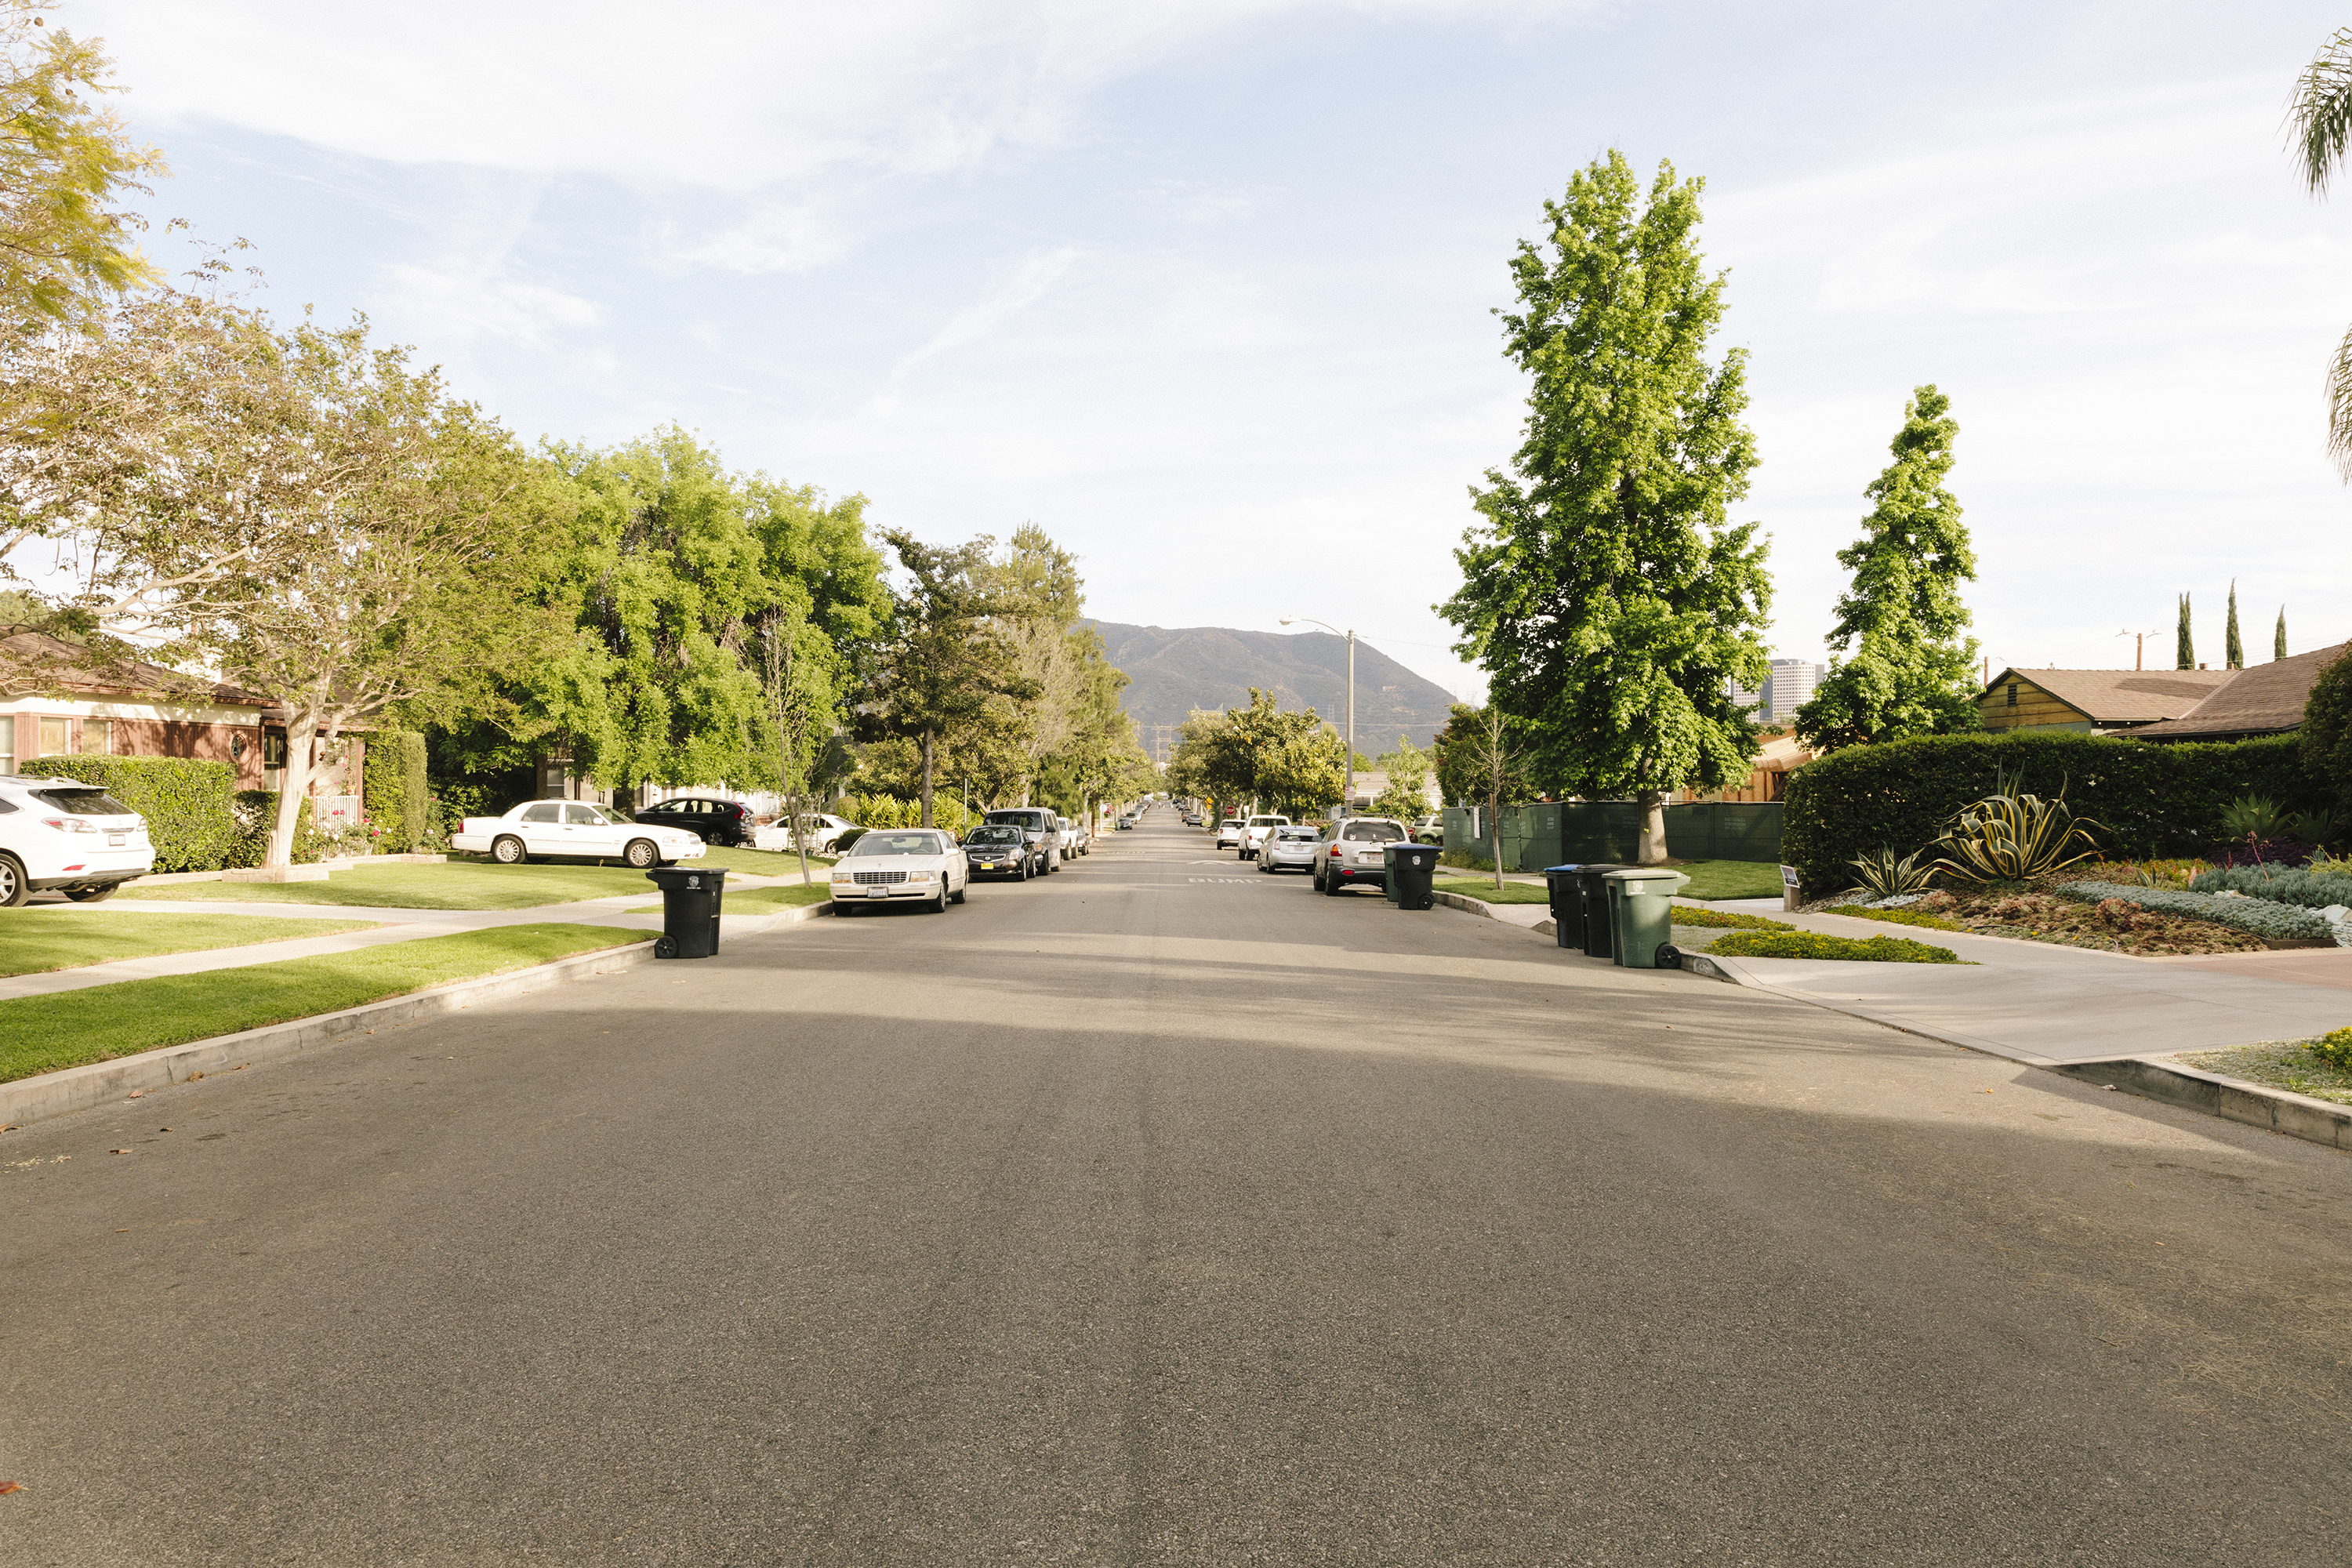 A street in a typical LA neighborhood, lined with trees, cars and garbage cans in the street.